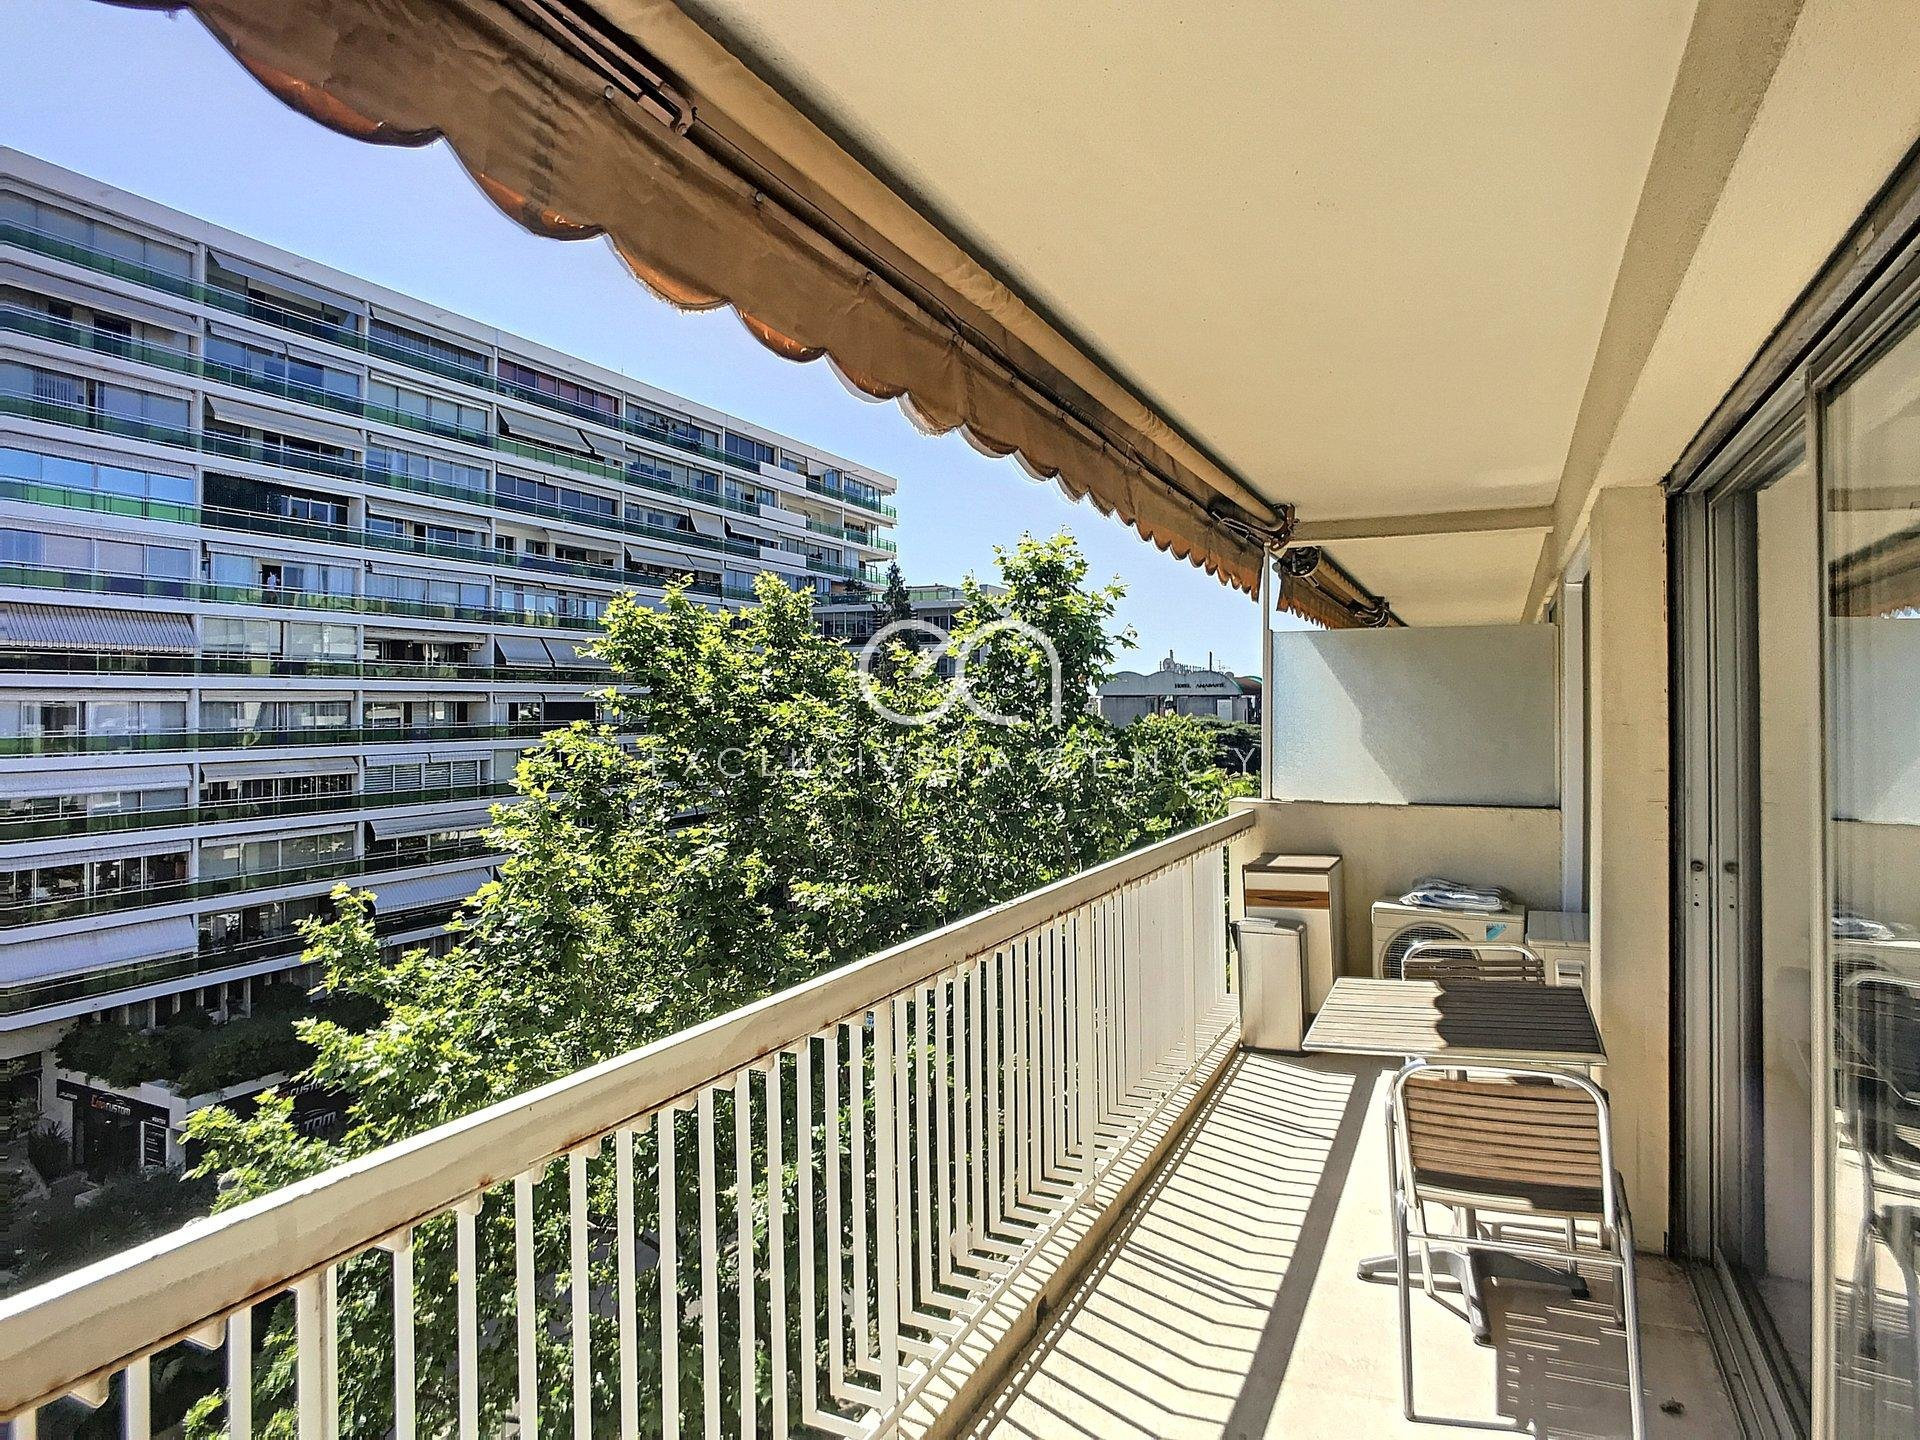 APPARTEMENT CANNES 82 m2, ETAGE ELEVE, TRAVERSANT